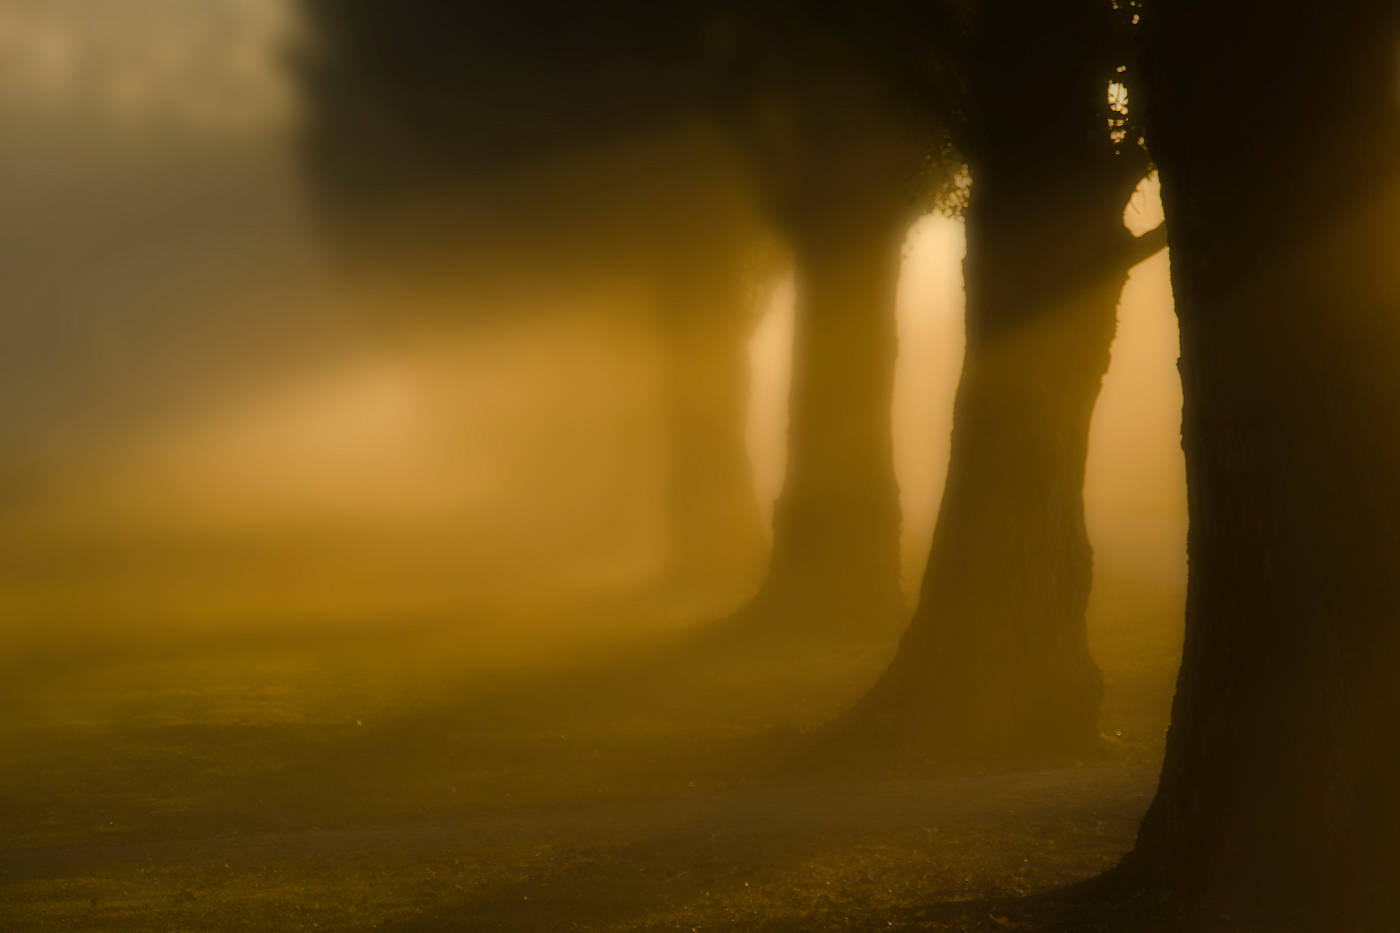 Trees & Light by Jim Friesen